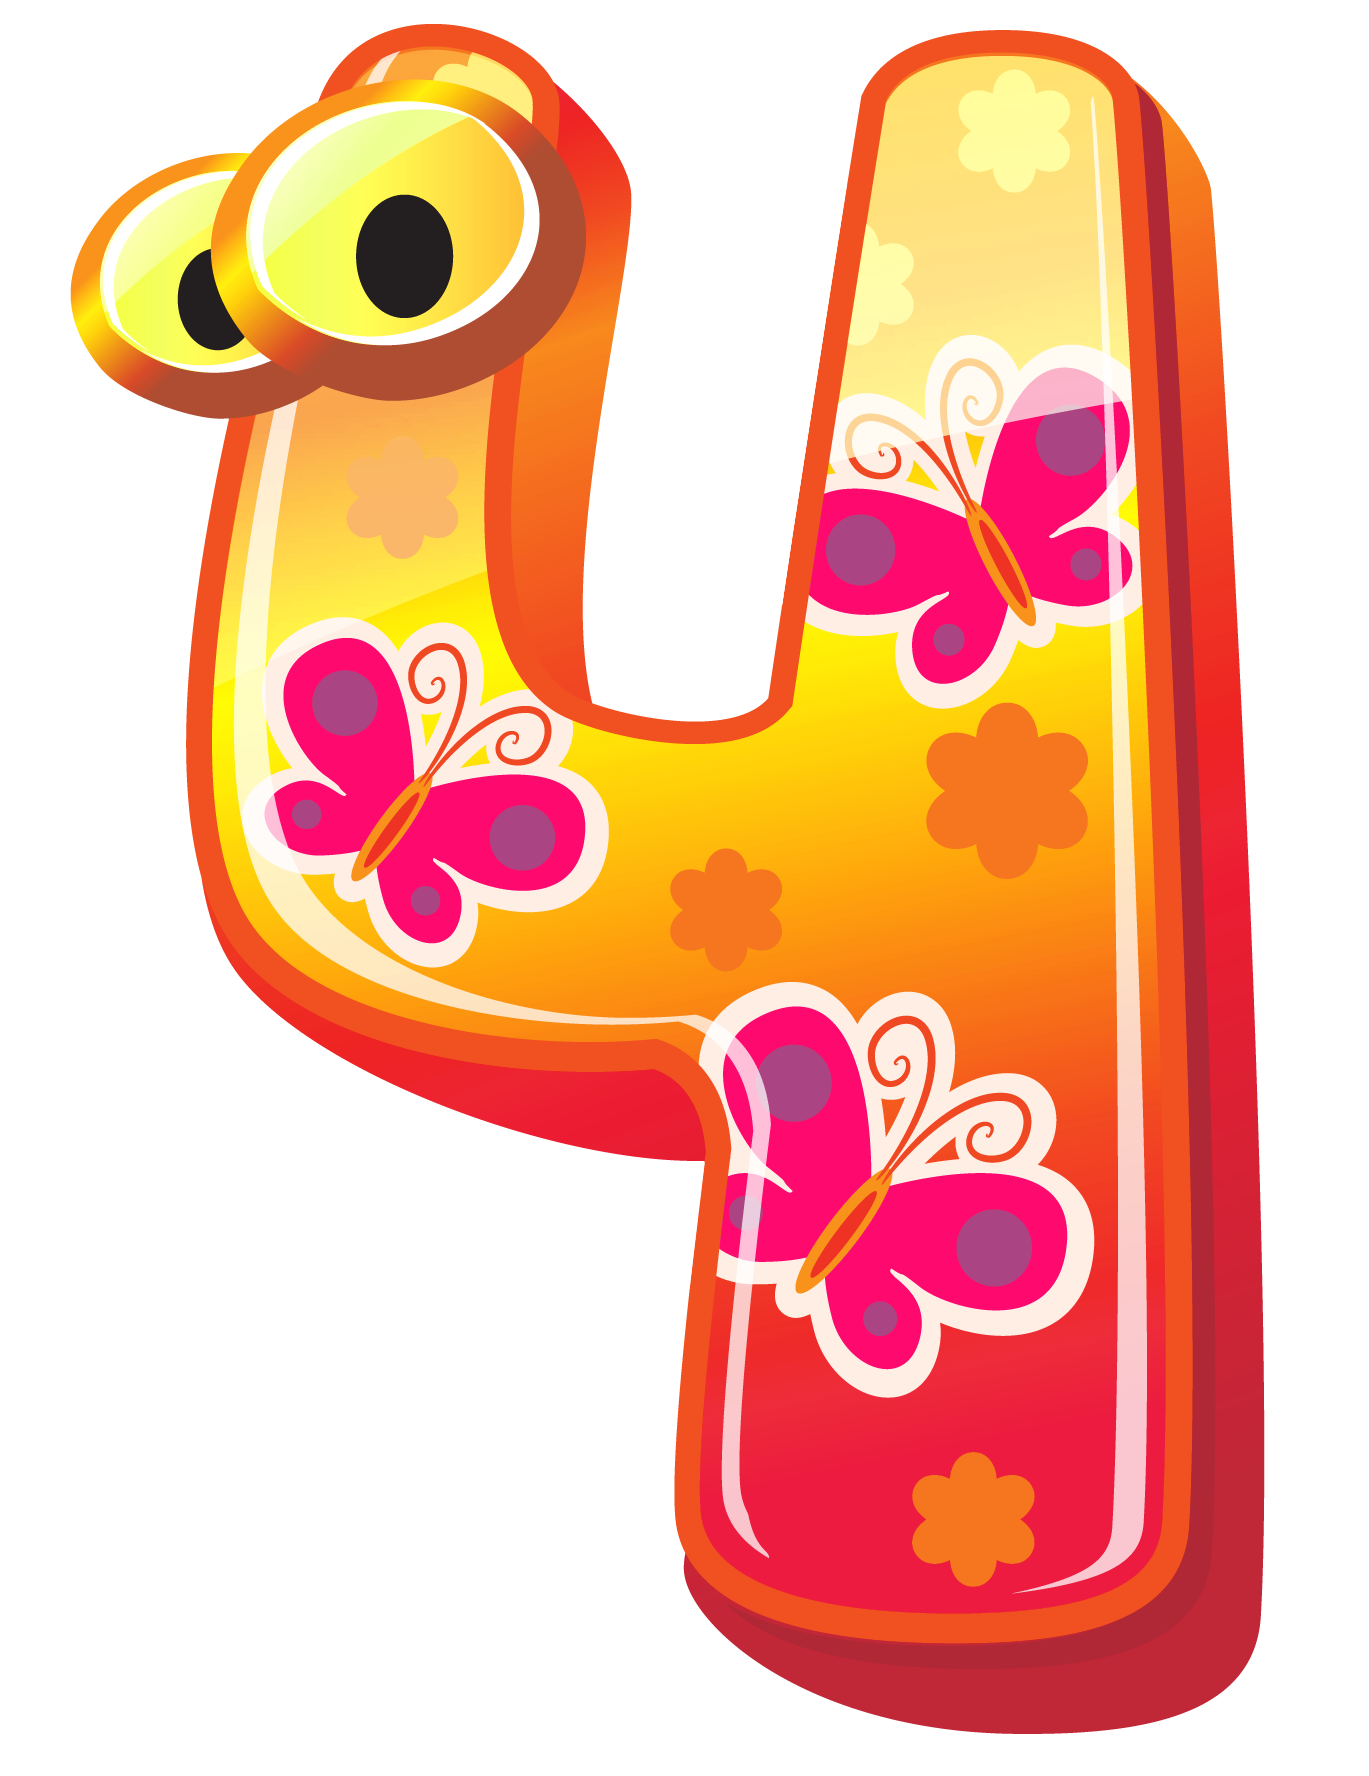 Cute number png image. Four clipart freeuse stock